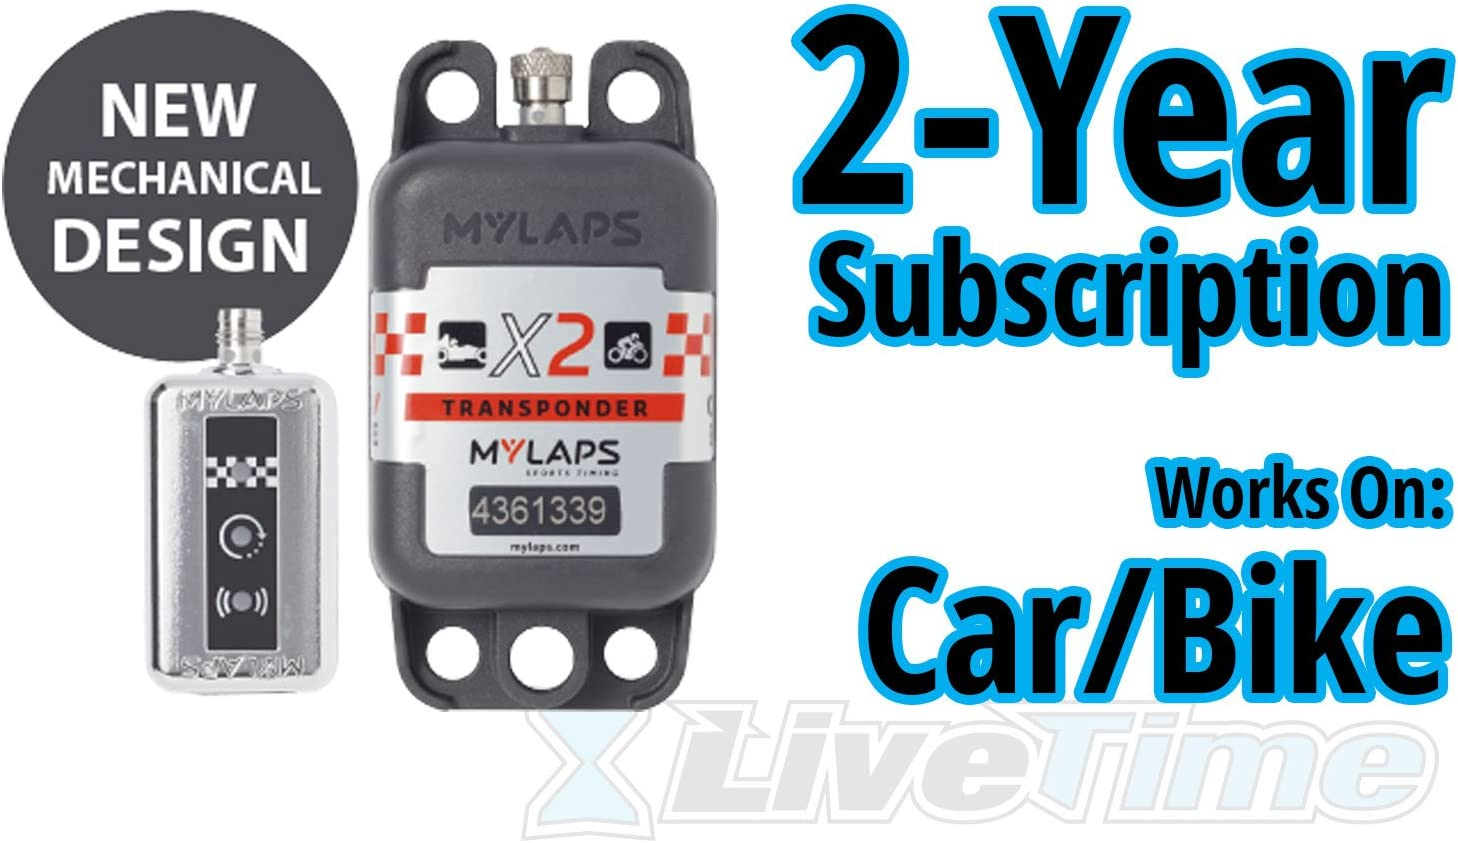 MyLaps X2 Transponder, Rechargeable, for Car Bike, includes 2-Year Subscription